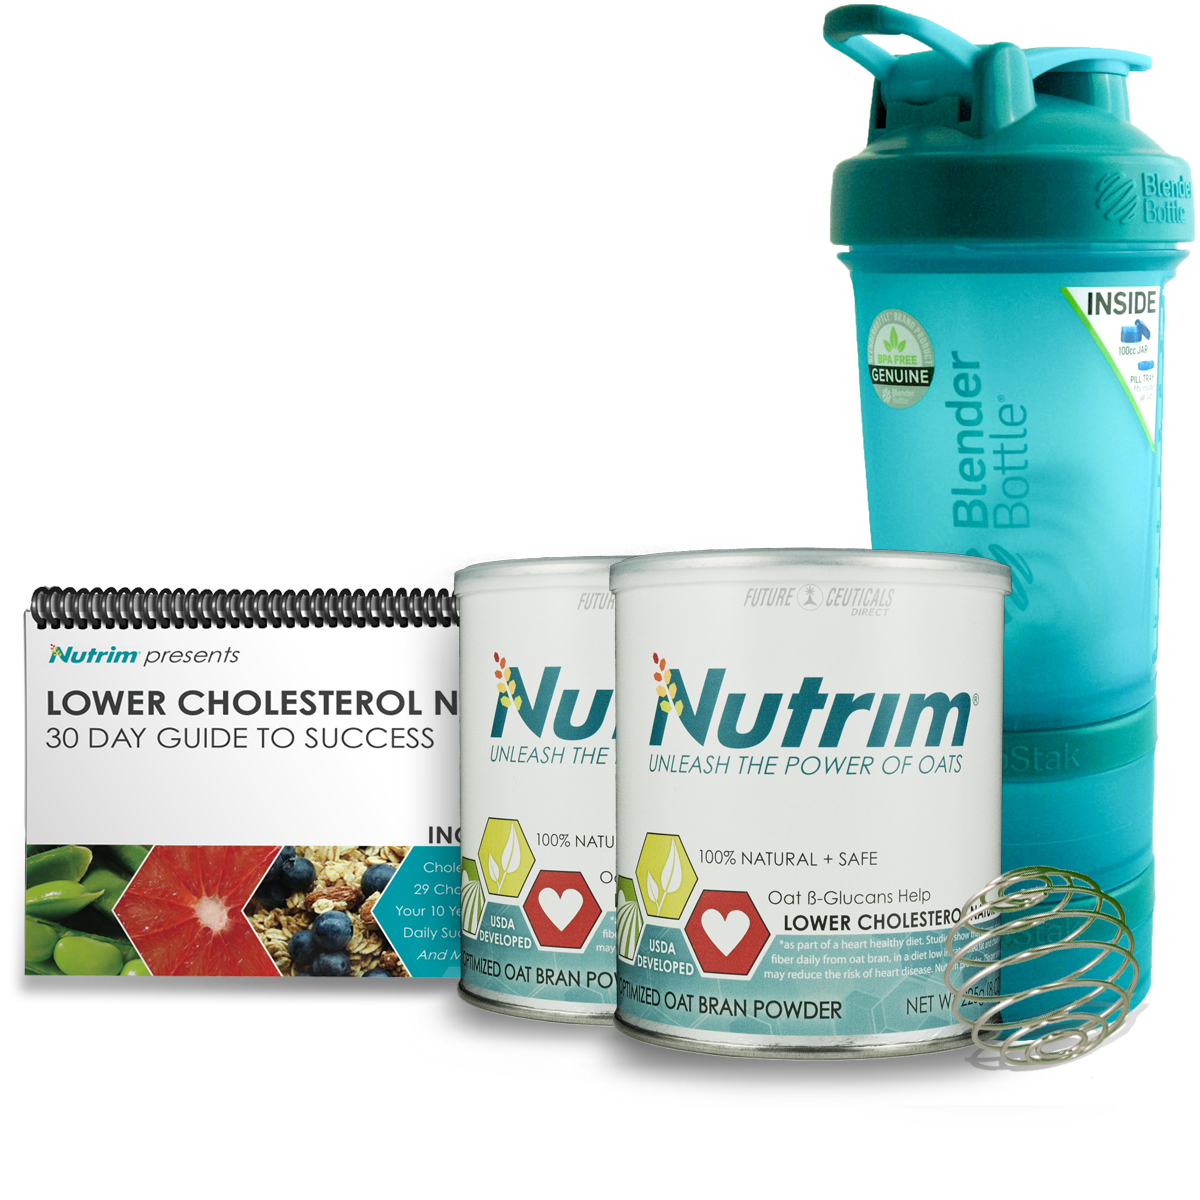 Achieve lower cholesterol with Nutrim Starter Kit